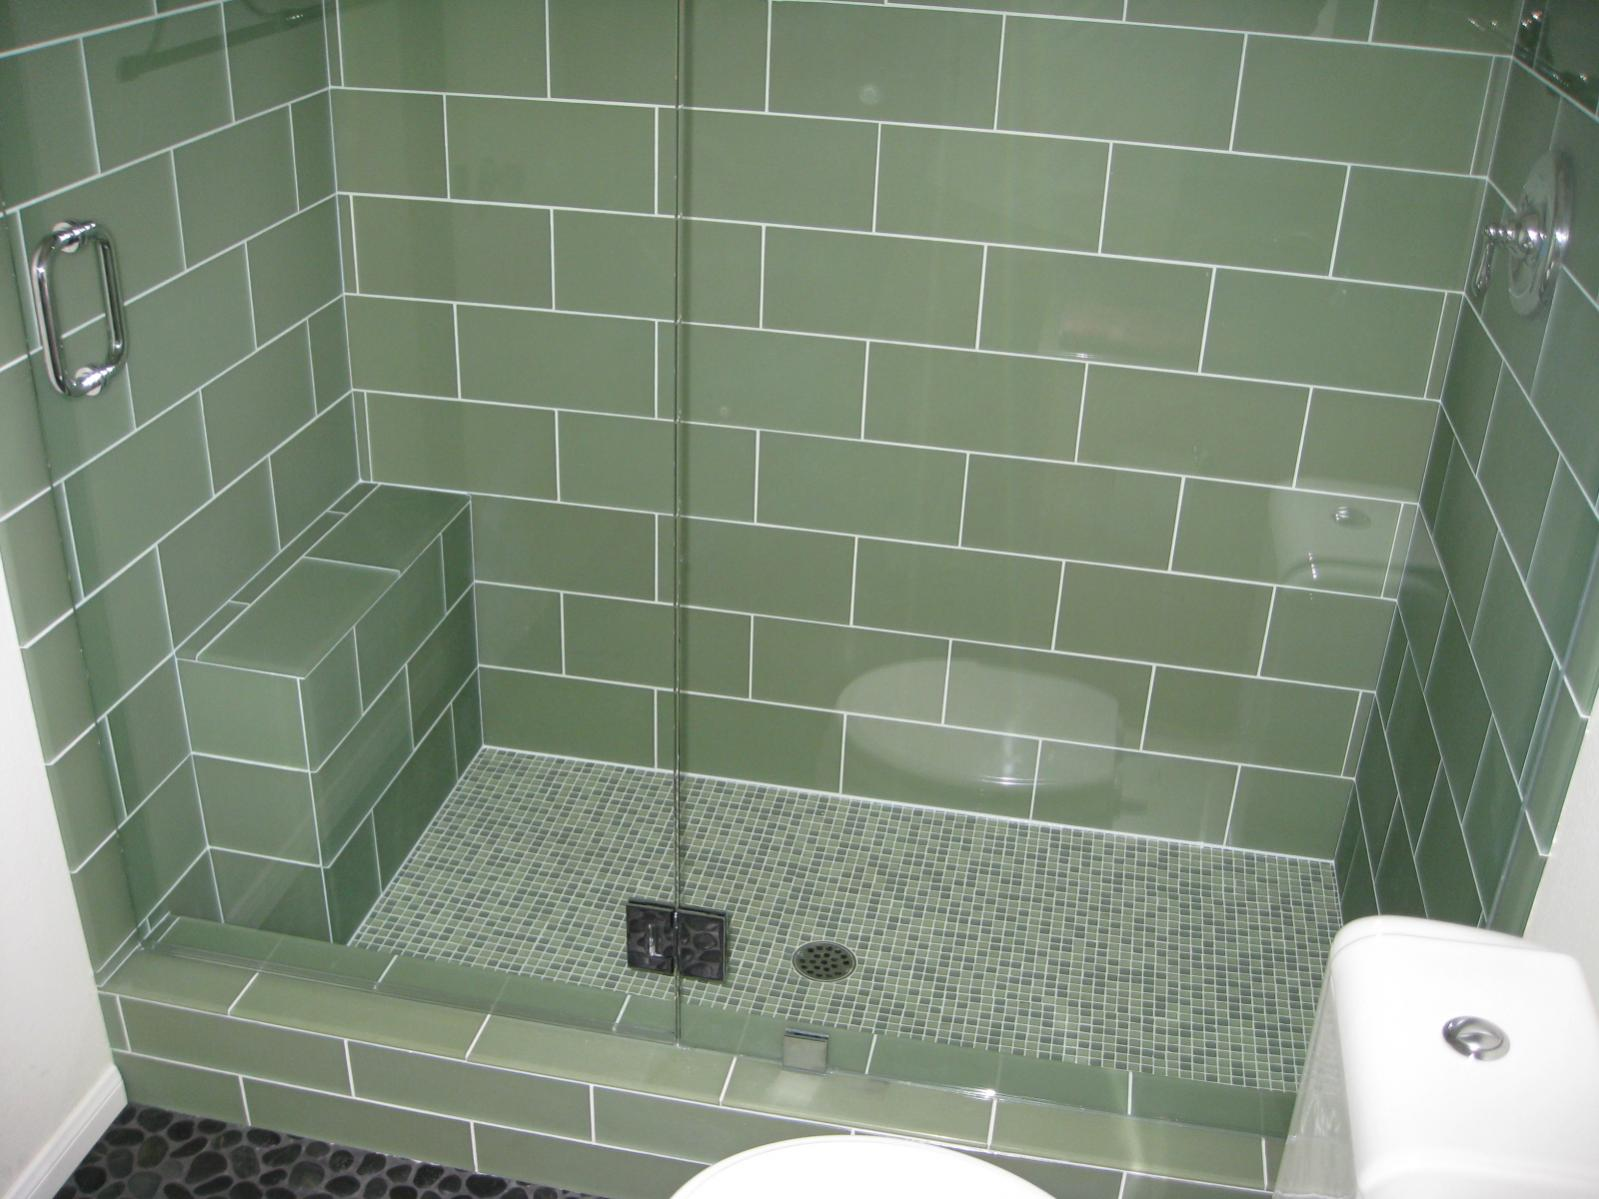 interior-green-themed-bathroom-design-of-small-bathroom-using-green-shower-room-theme-of-green-pebble-floor-combine-with-green-tile-wall-complete-with-glass-door-and-pebble-floor-great-bathroom-decor